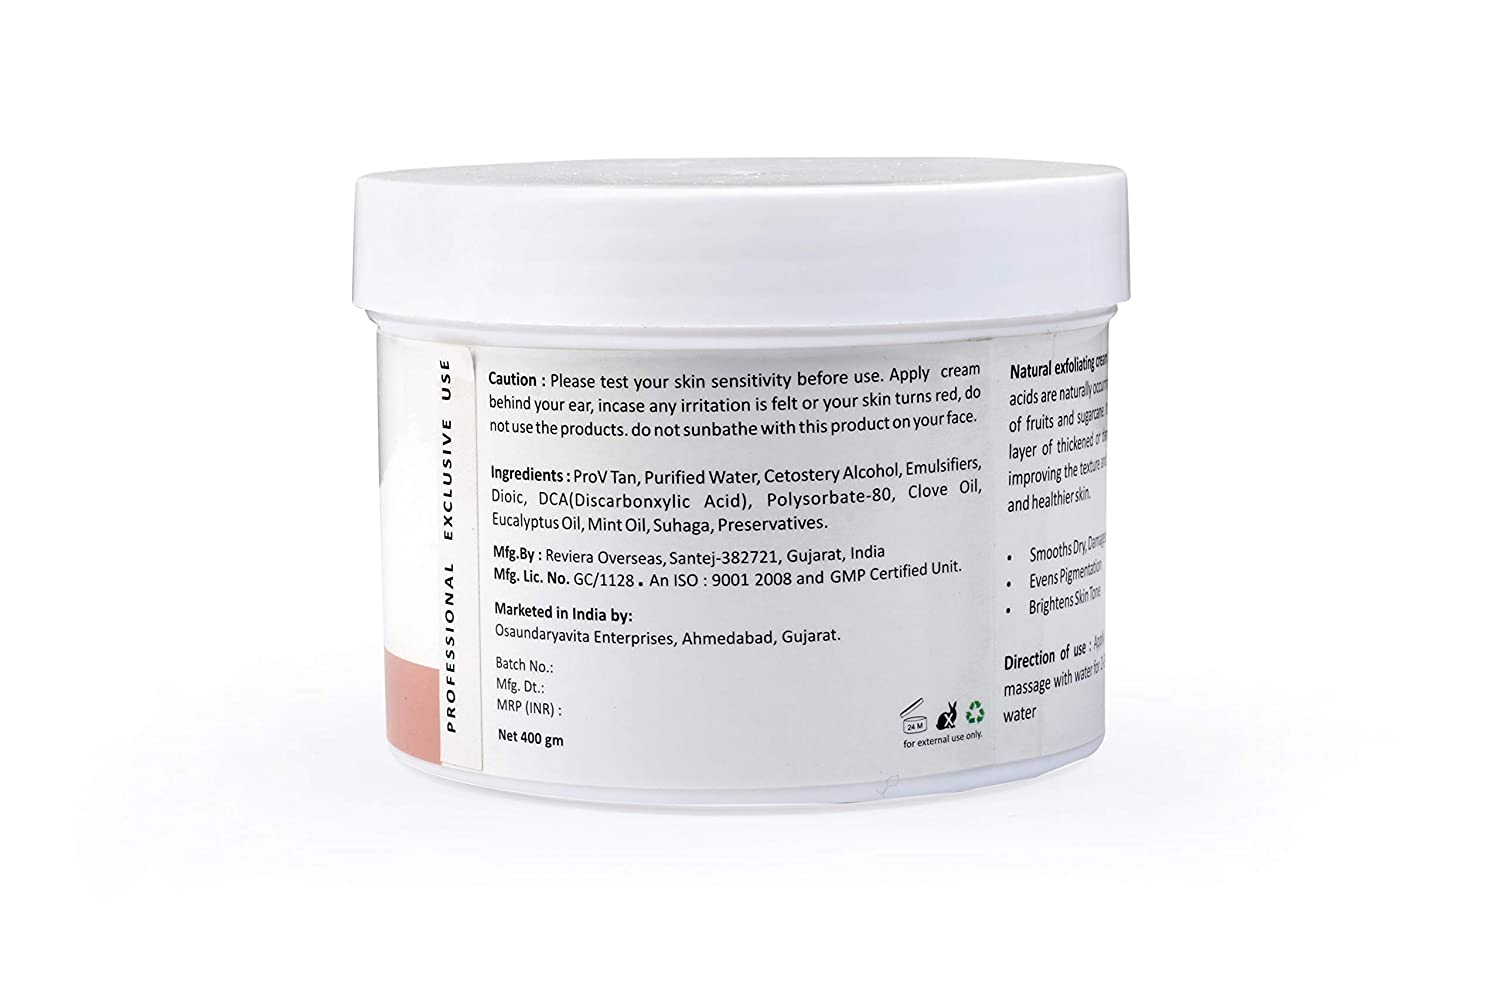 Le Bonheur   Reversion Tan Removal and Skin Lightening Natural Exfoliating  Cream (400 g)